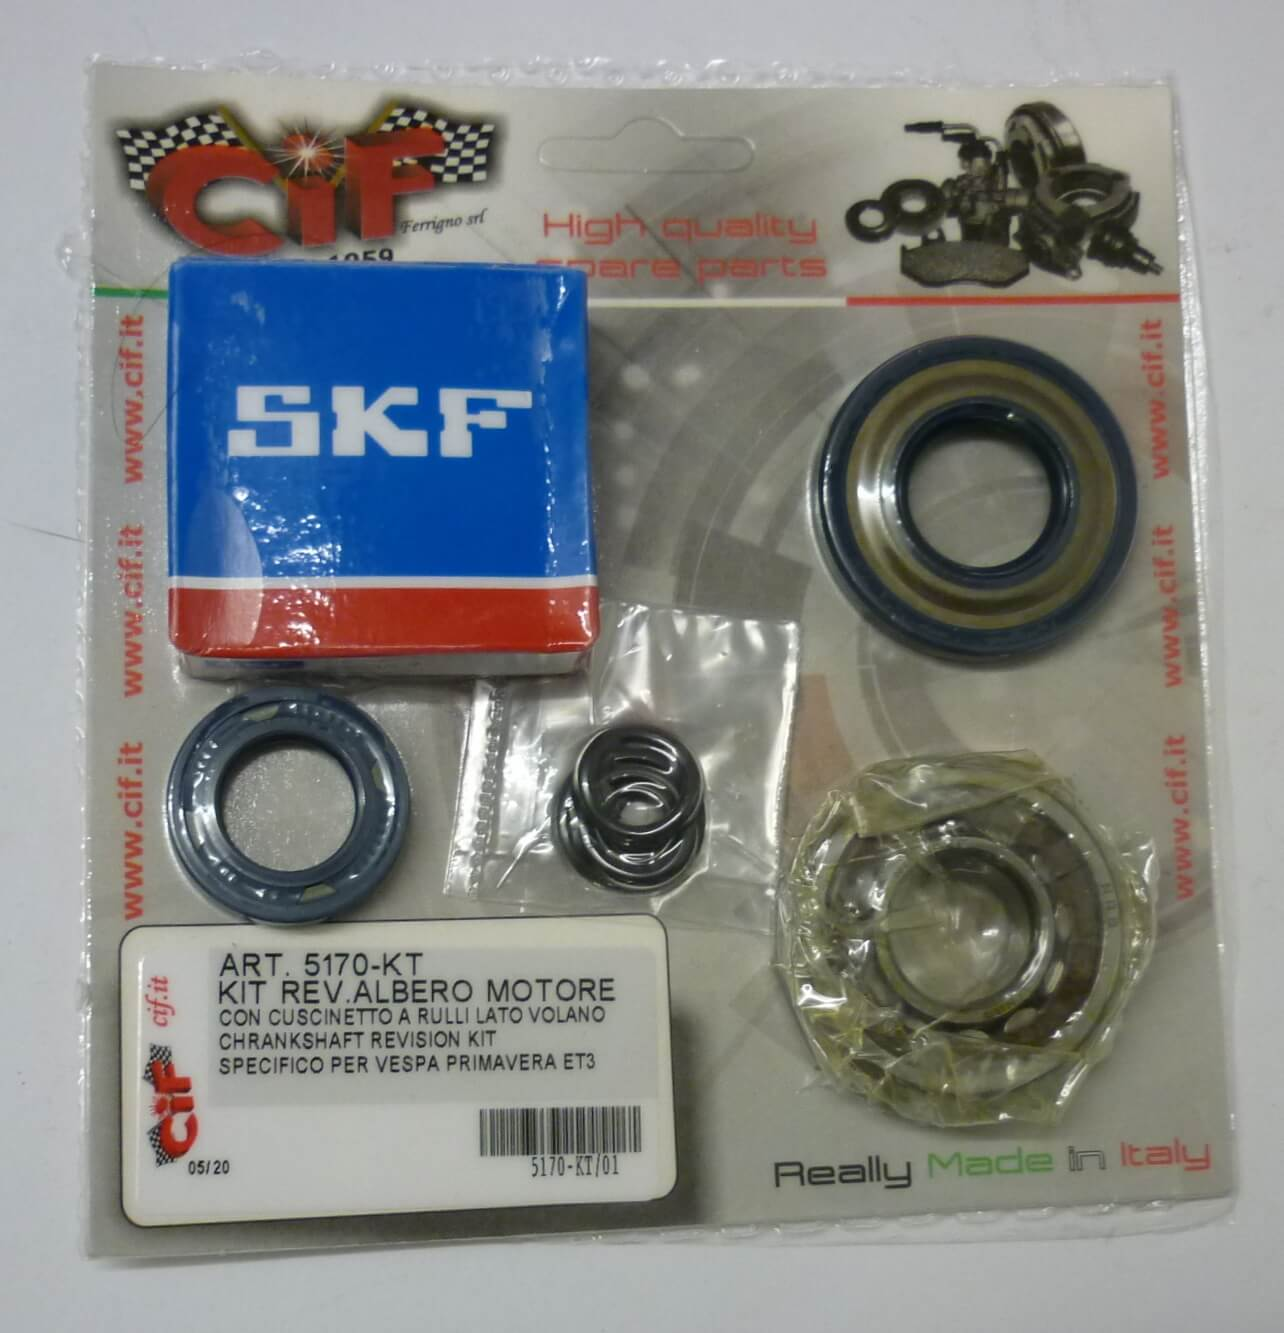 Kit crankshaft revision kit, Vespa 50 -125 Primavera - ET3